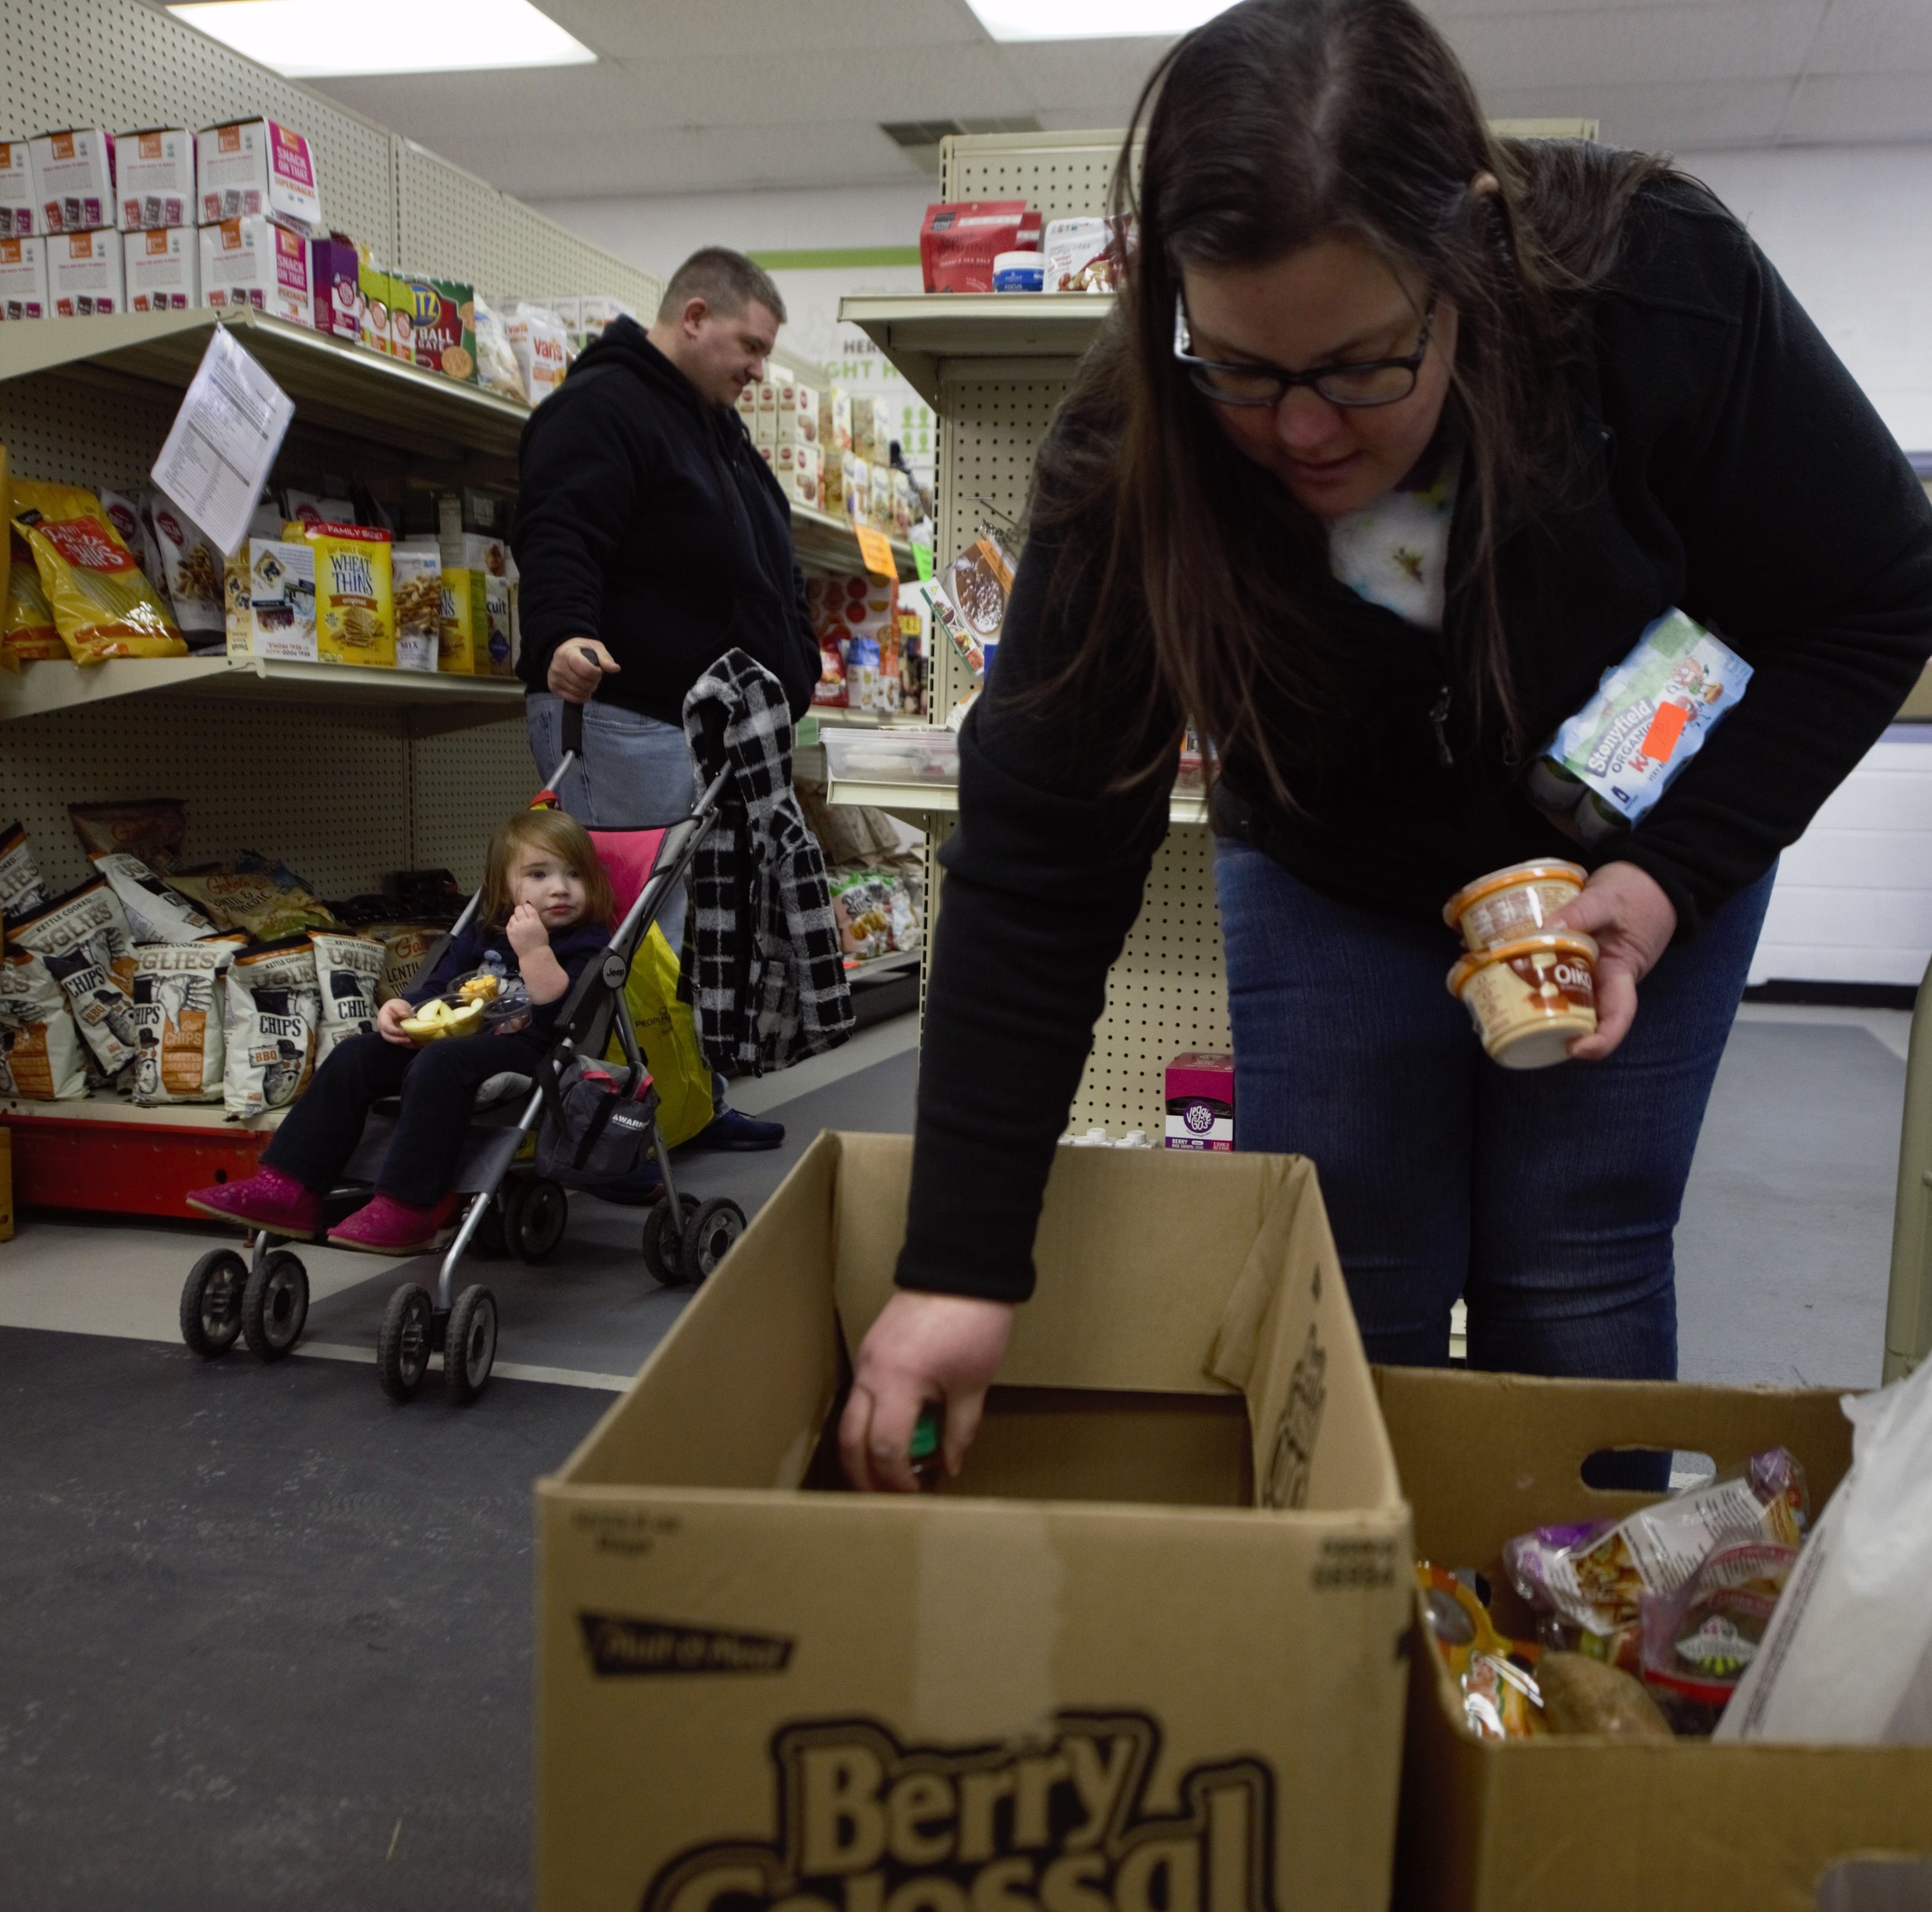 Becca Fink of Hanover loads up a box of food at the York County Food Bank. Fink's husband Stephen works for the Dept. of Commerce and with the shutdown entering its 28th day the family has been forced to rely on local food banks within the area.